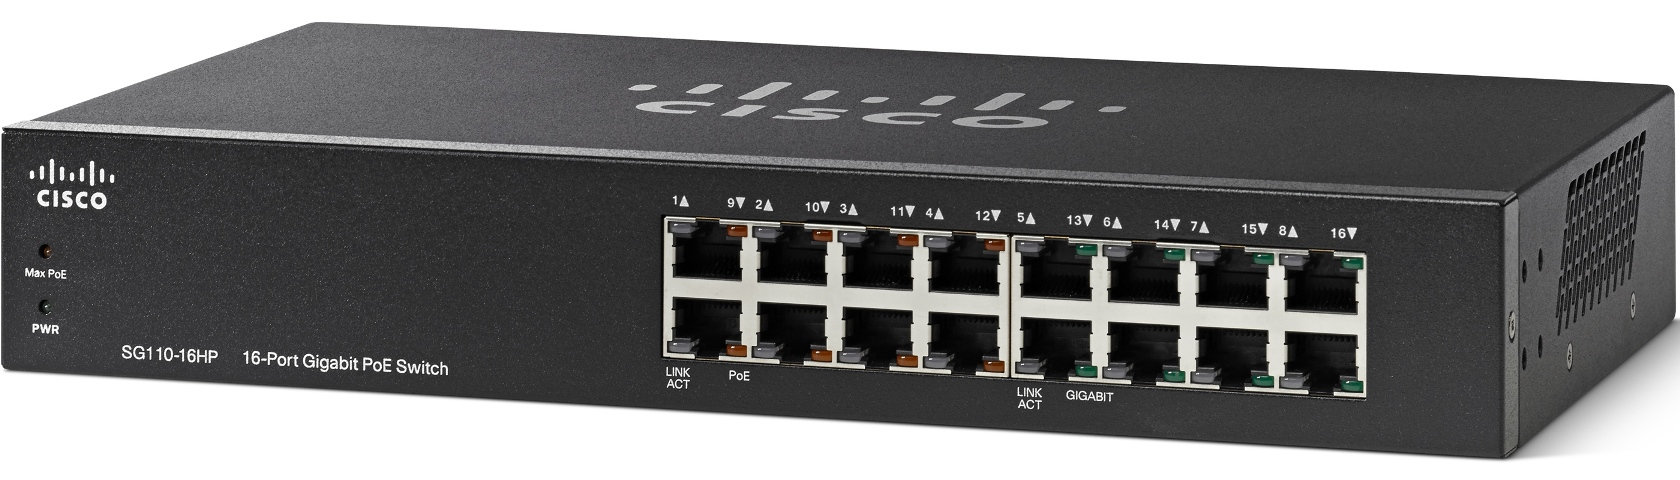 Cisco switch SG110-16HP, 16x10/100/1000, bez managementu, PoE